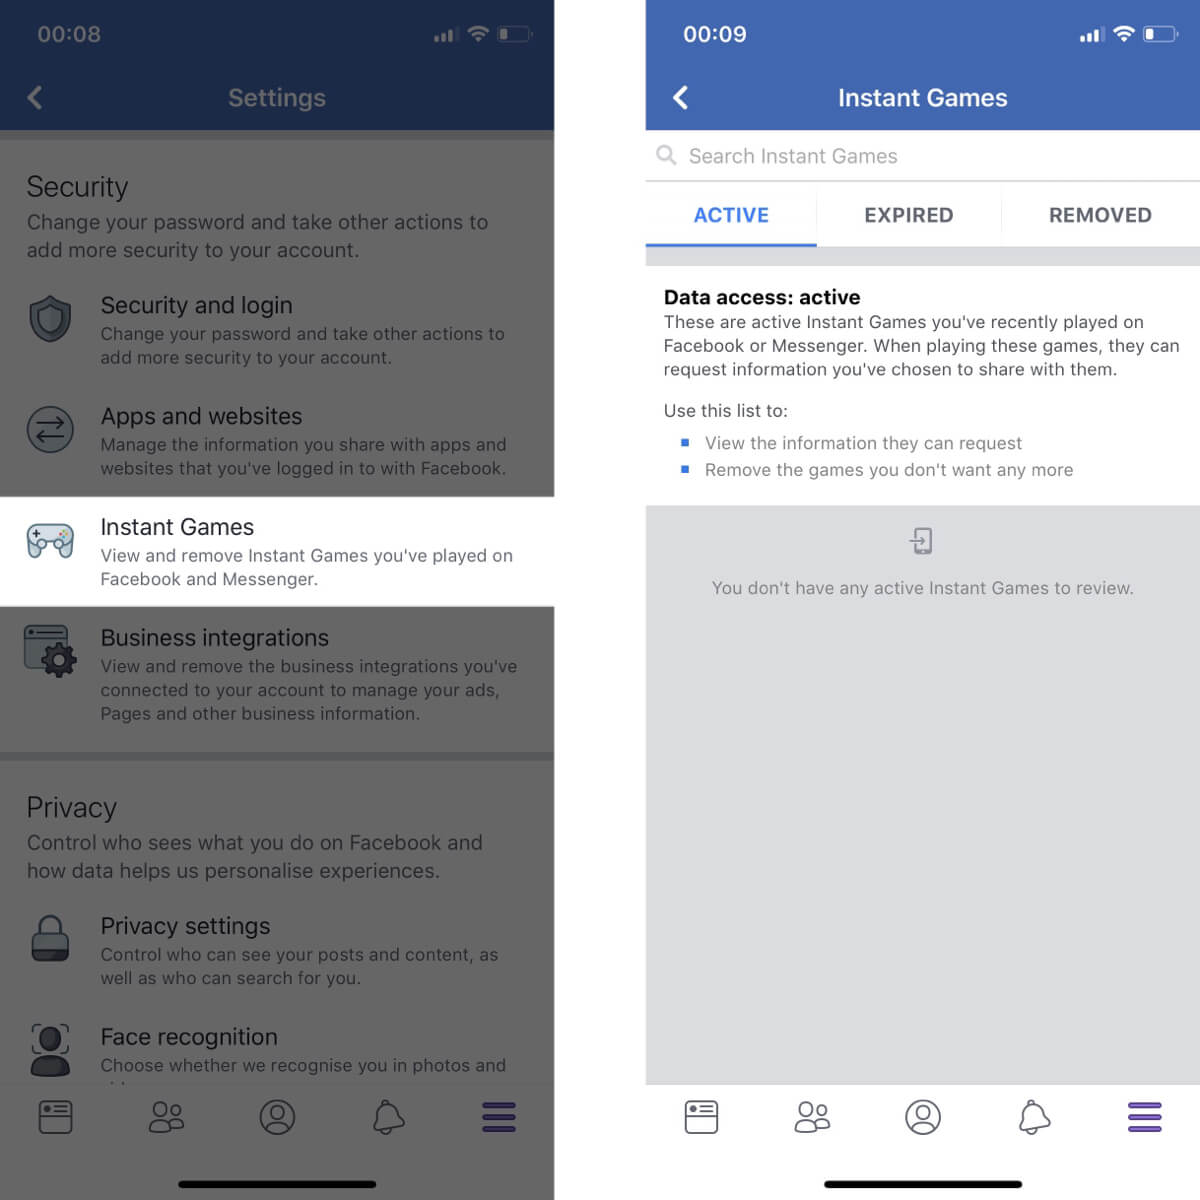 Screenshots showing how to access your instant game settings on Facebook.